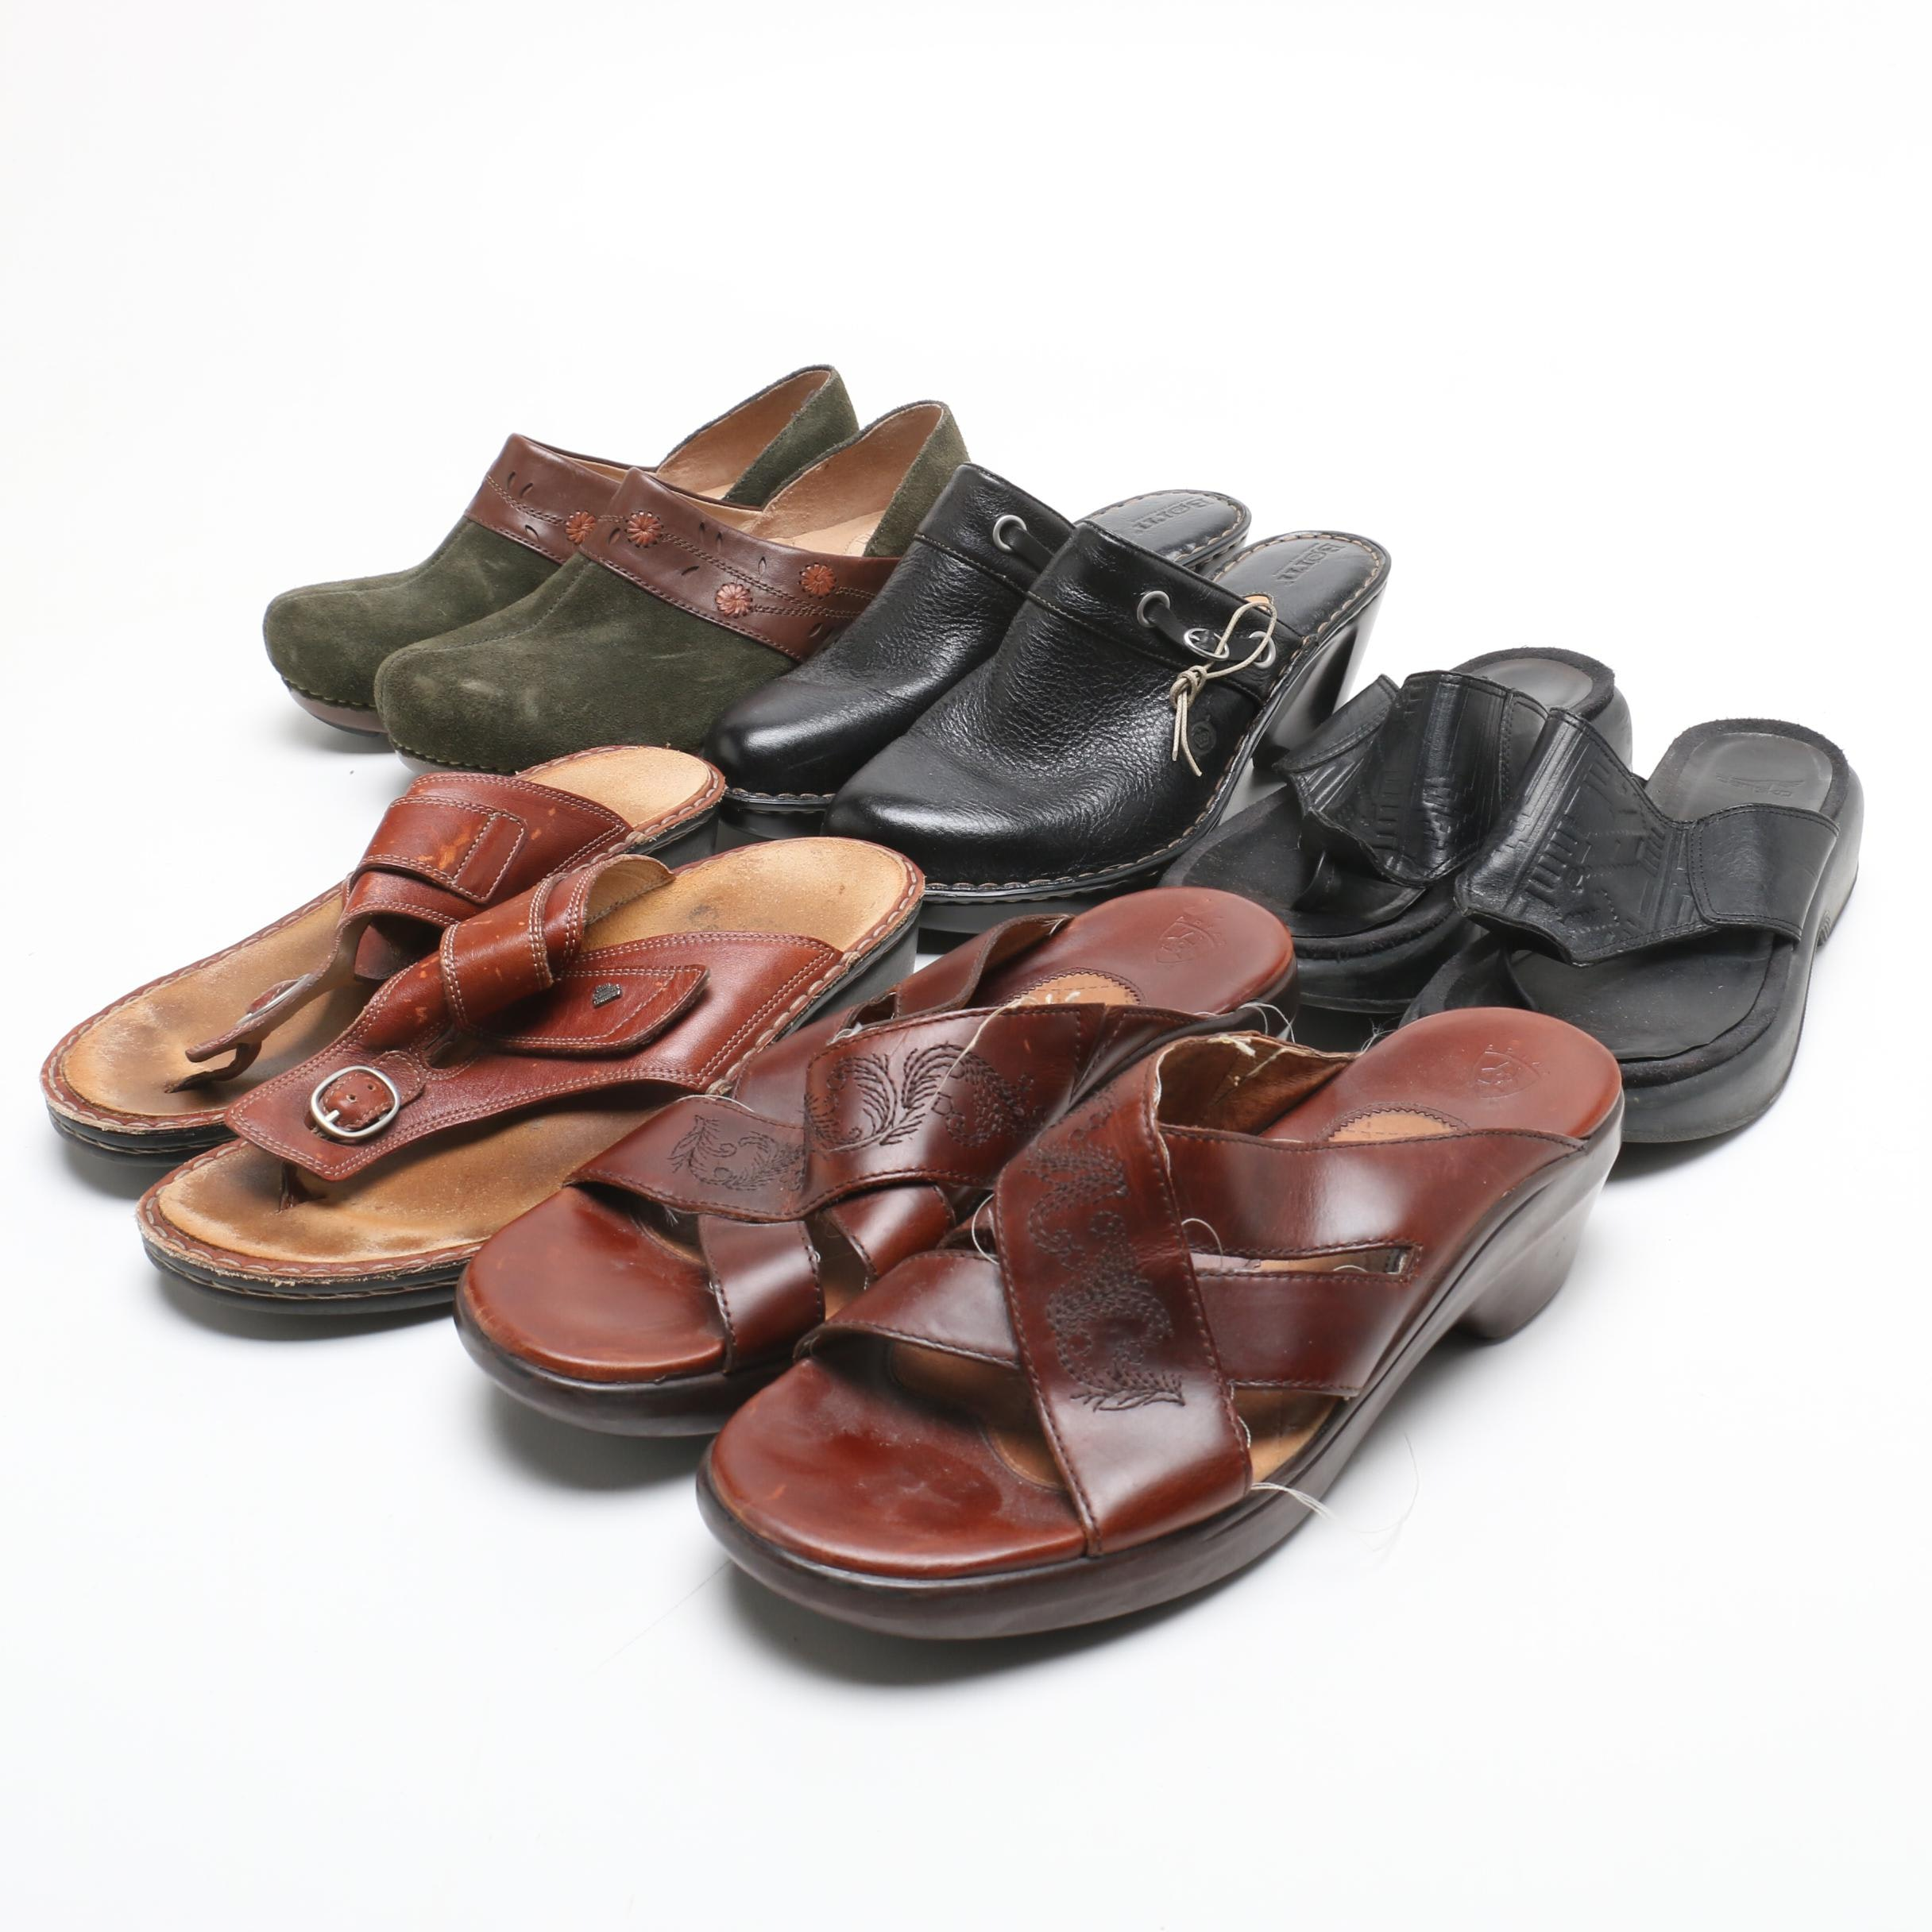 Dansko, Børn, Ariat and Finn Comfort Leather Sandals and Clogs